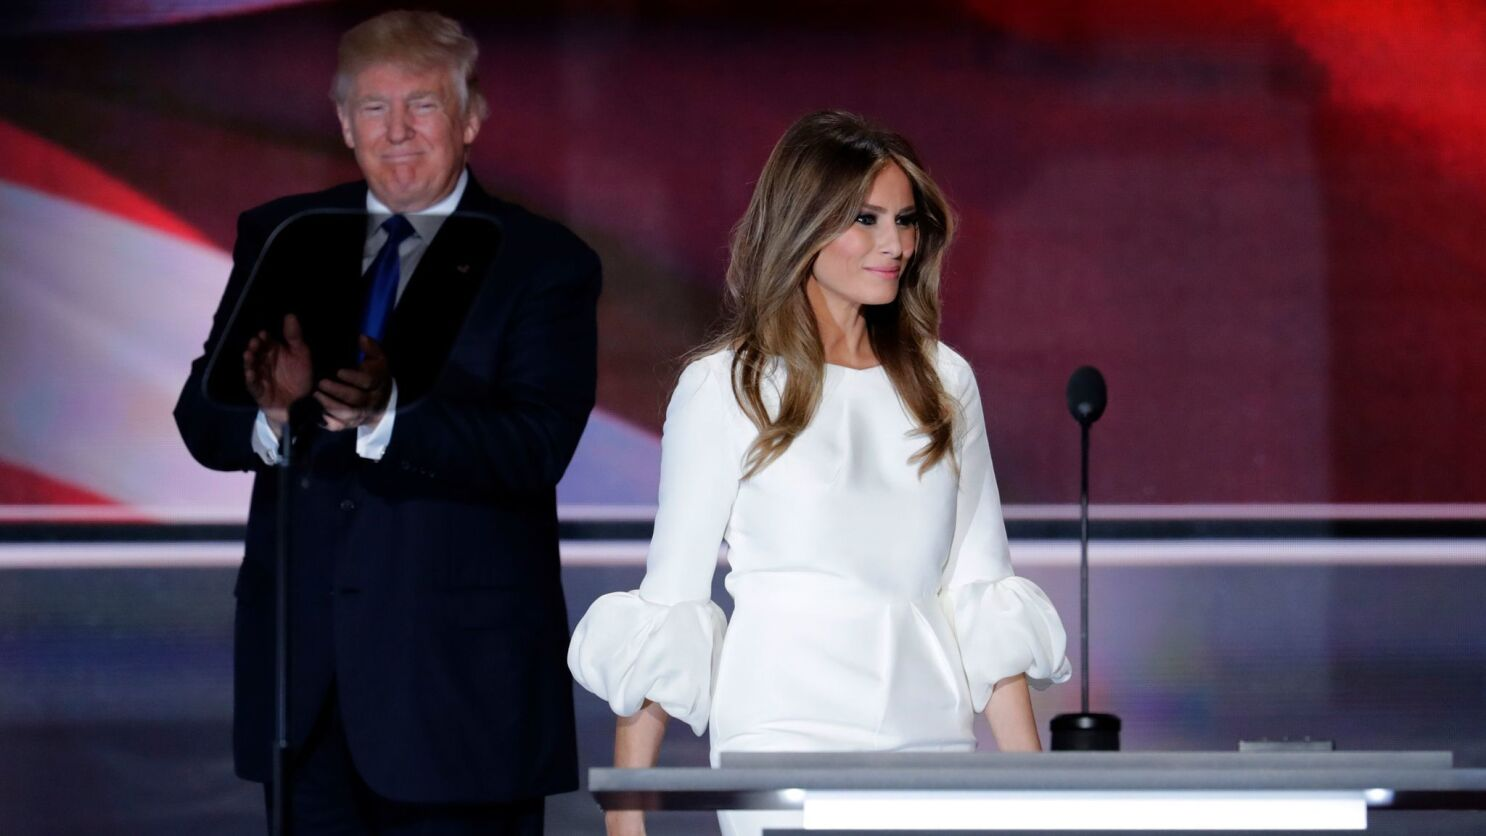 Sophie Theallet vows not to dress Melania Trump, asks other designers to do  the same - Los Angeles Times